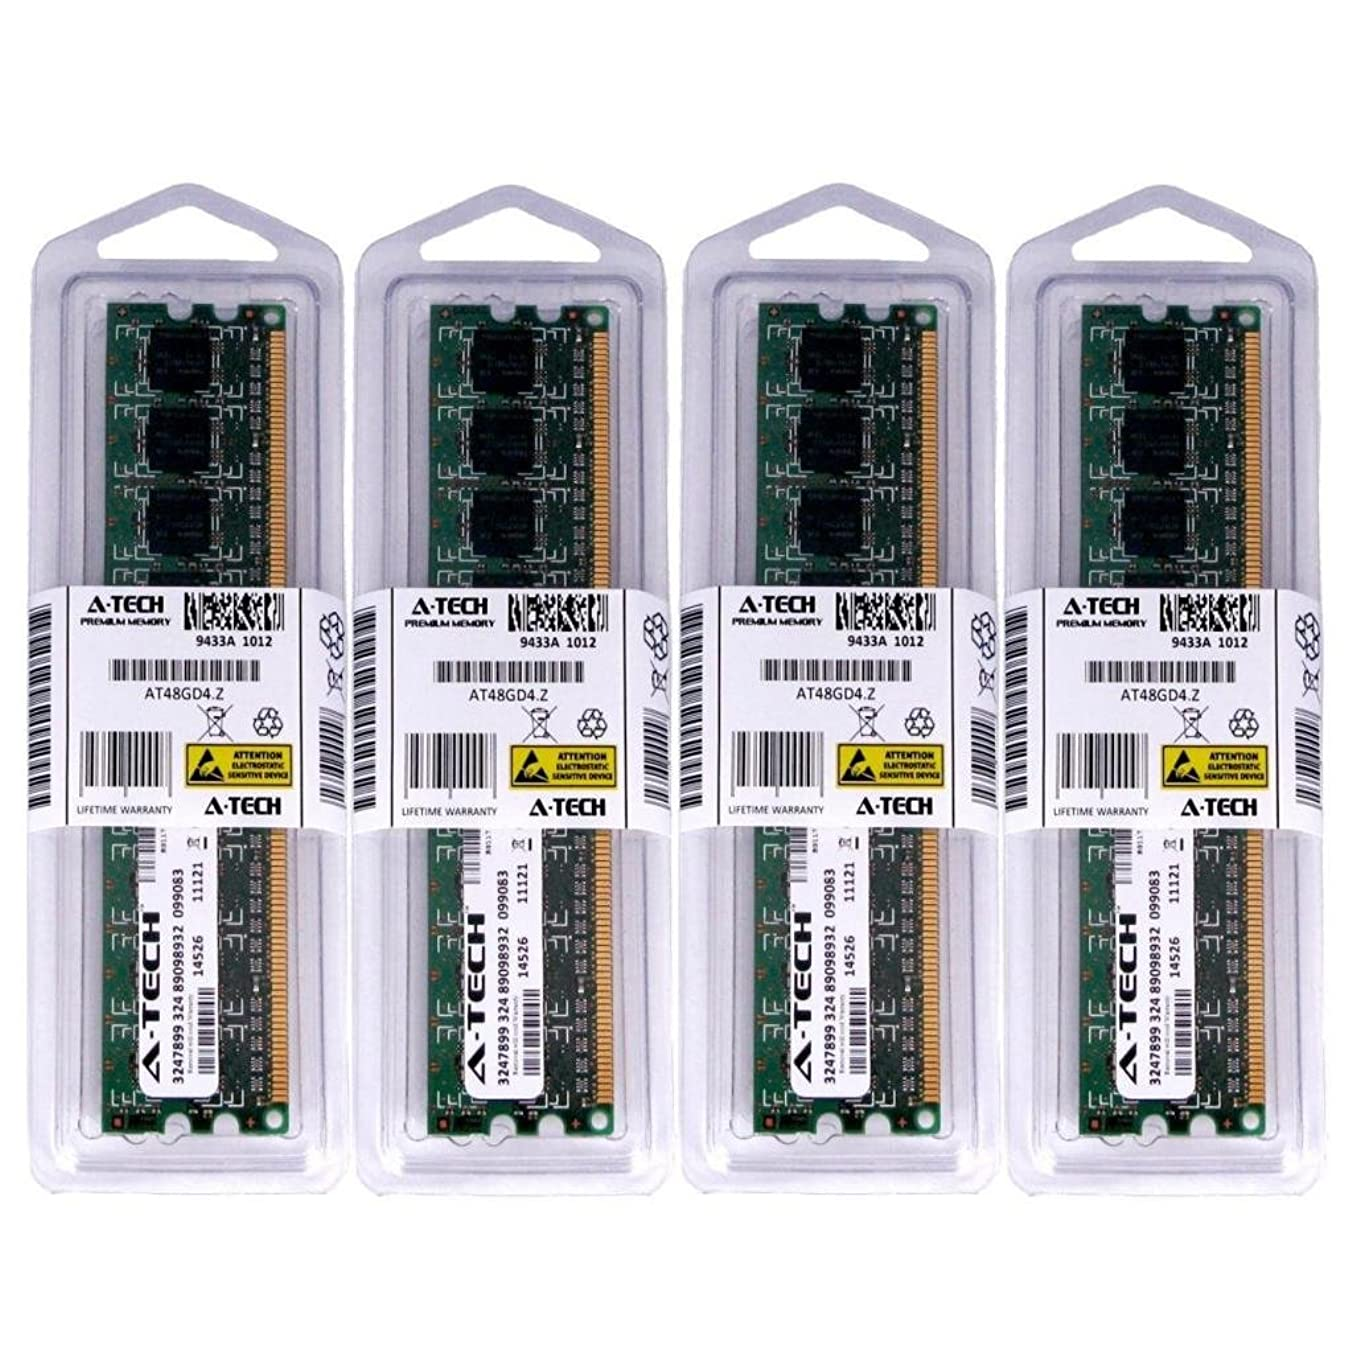 16GB KIT (4 x 4GB) for Dell Vostro 460. DIMM DDR3 Non-ECC PC3-10600 1333MHz RAM Memory. Genuine A-Tech Brand.